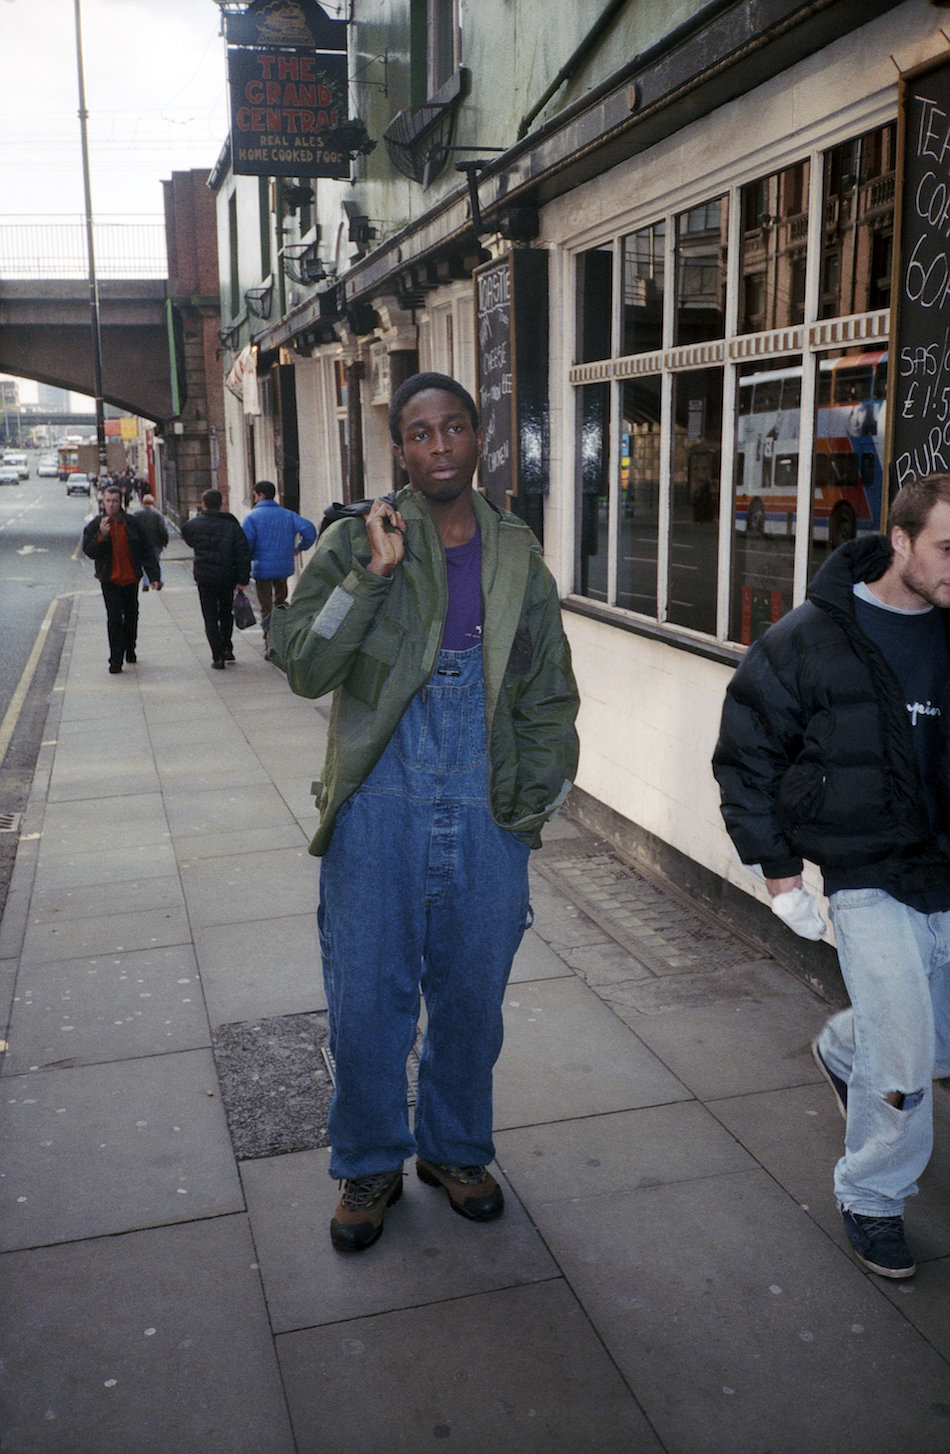 Untitled, Manchester 1997 by Jason Evans - North: Identity, Photography, Fashion